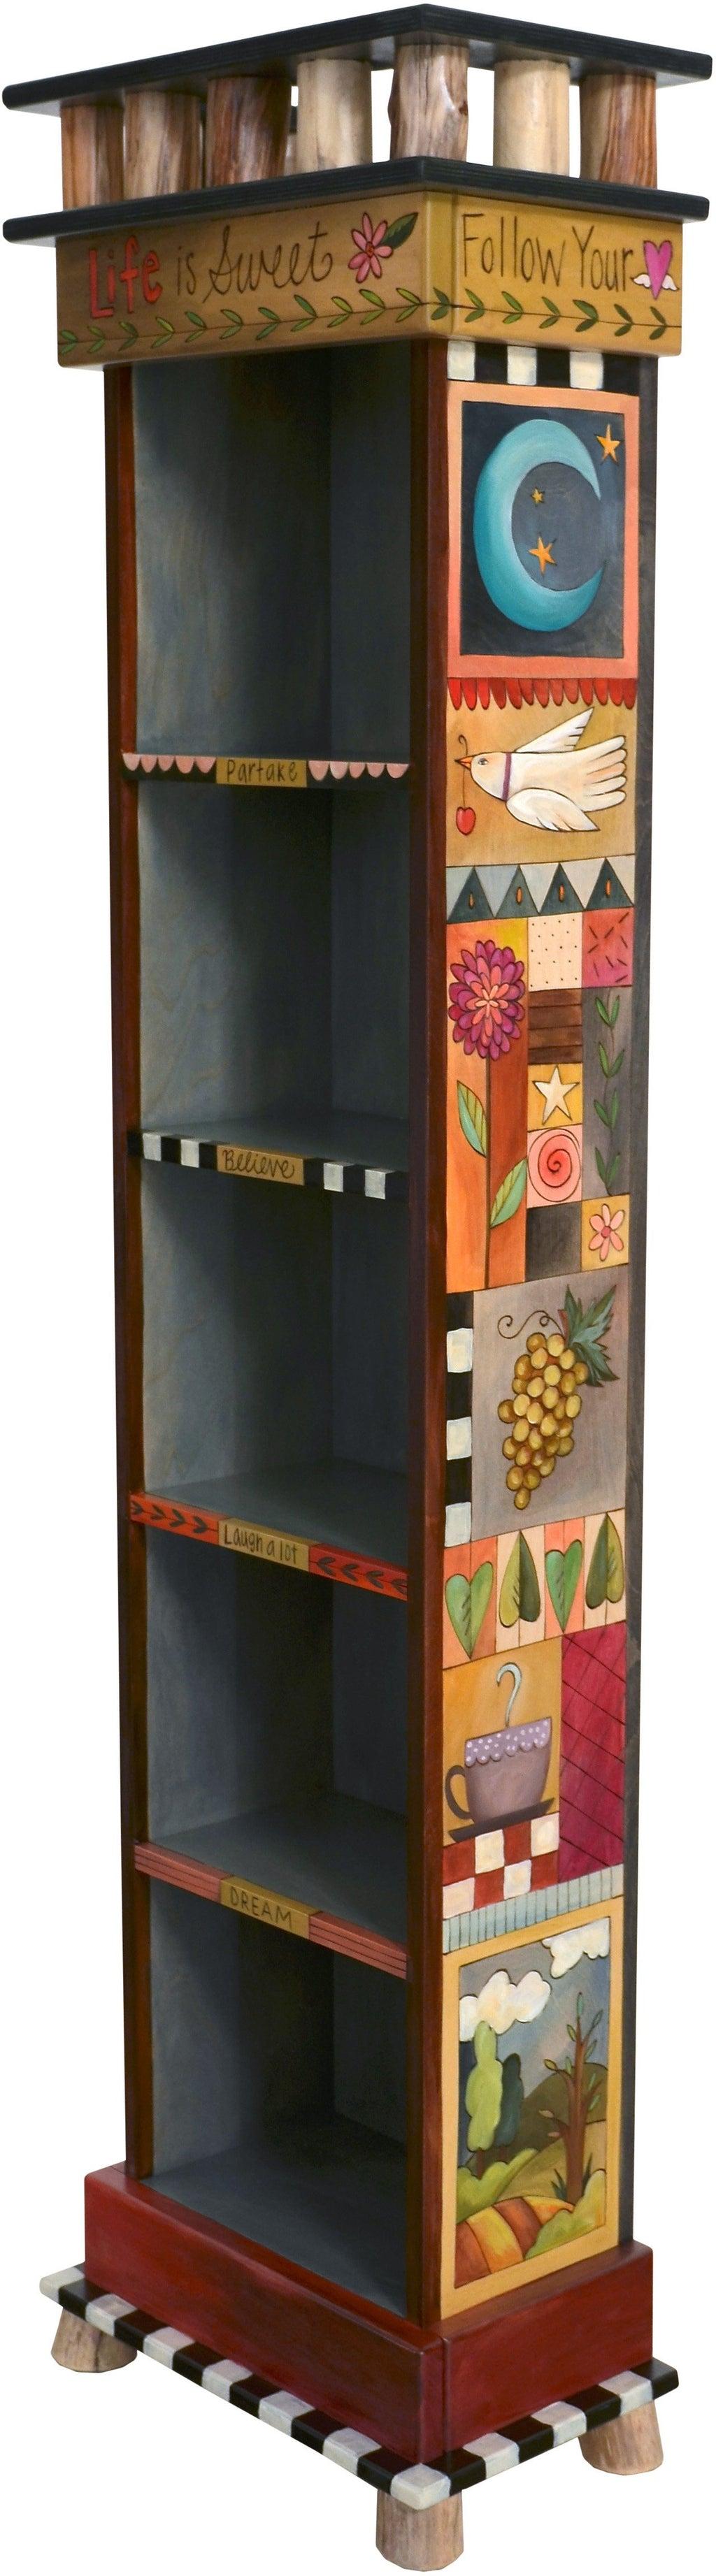 Tall Bookcase –  Handsome tall bookcase with dark interior and colorful block icons on the exterior walls